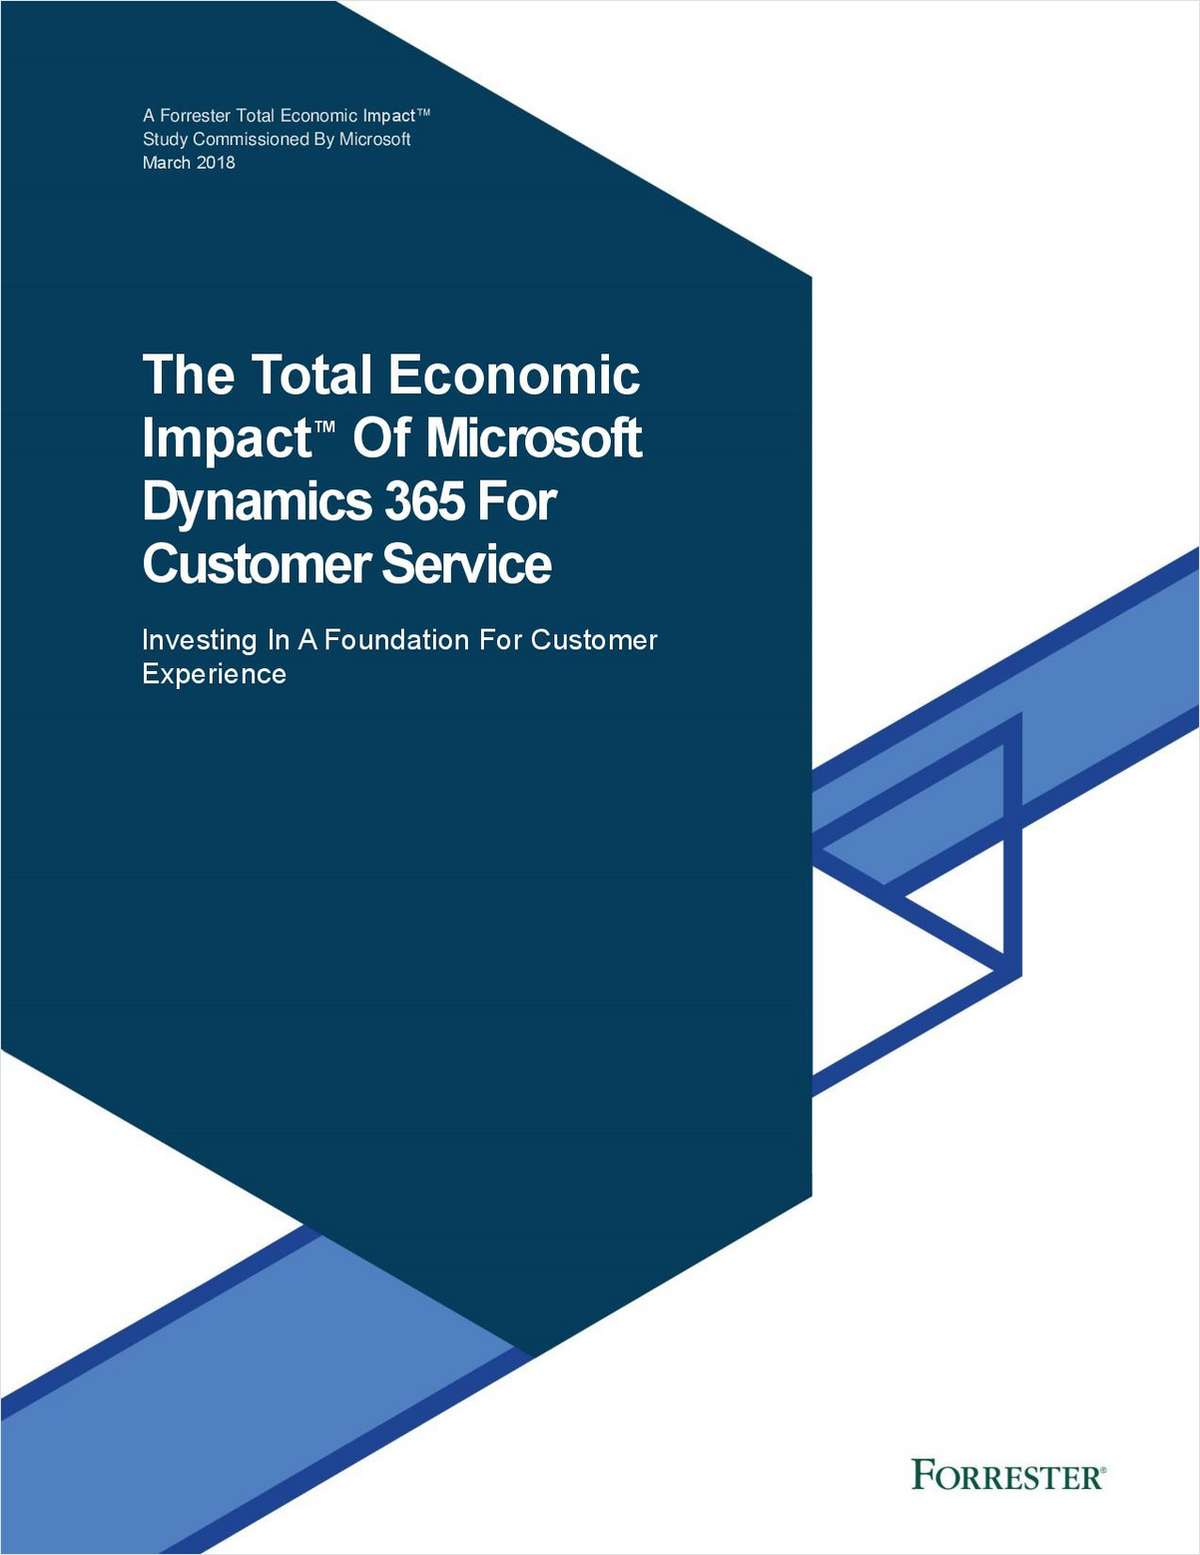 The Total Economic Impact of Microsoft Dynamics 365 for Customer Service